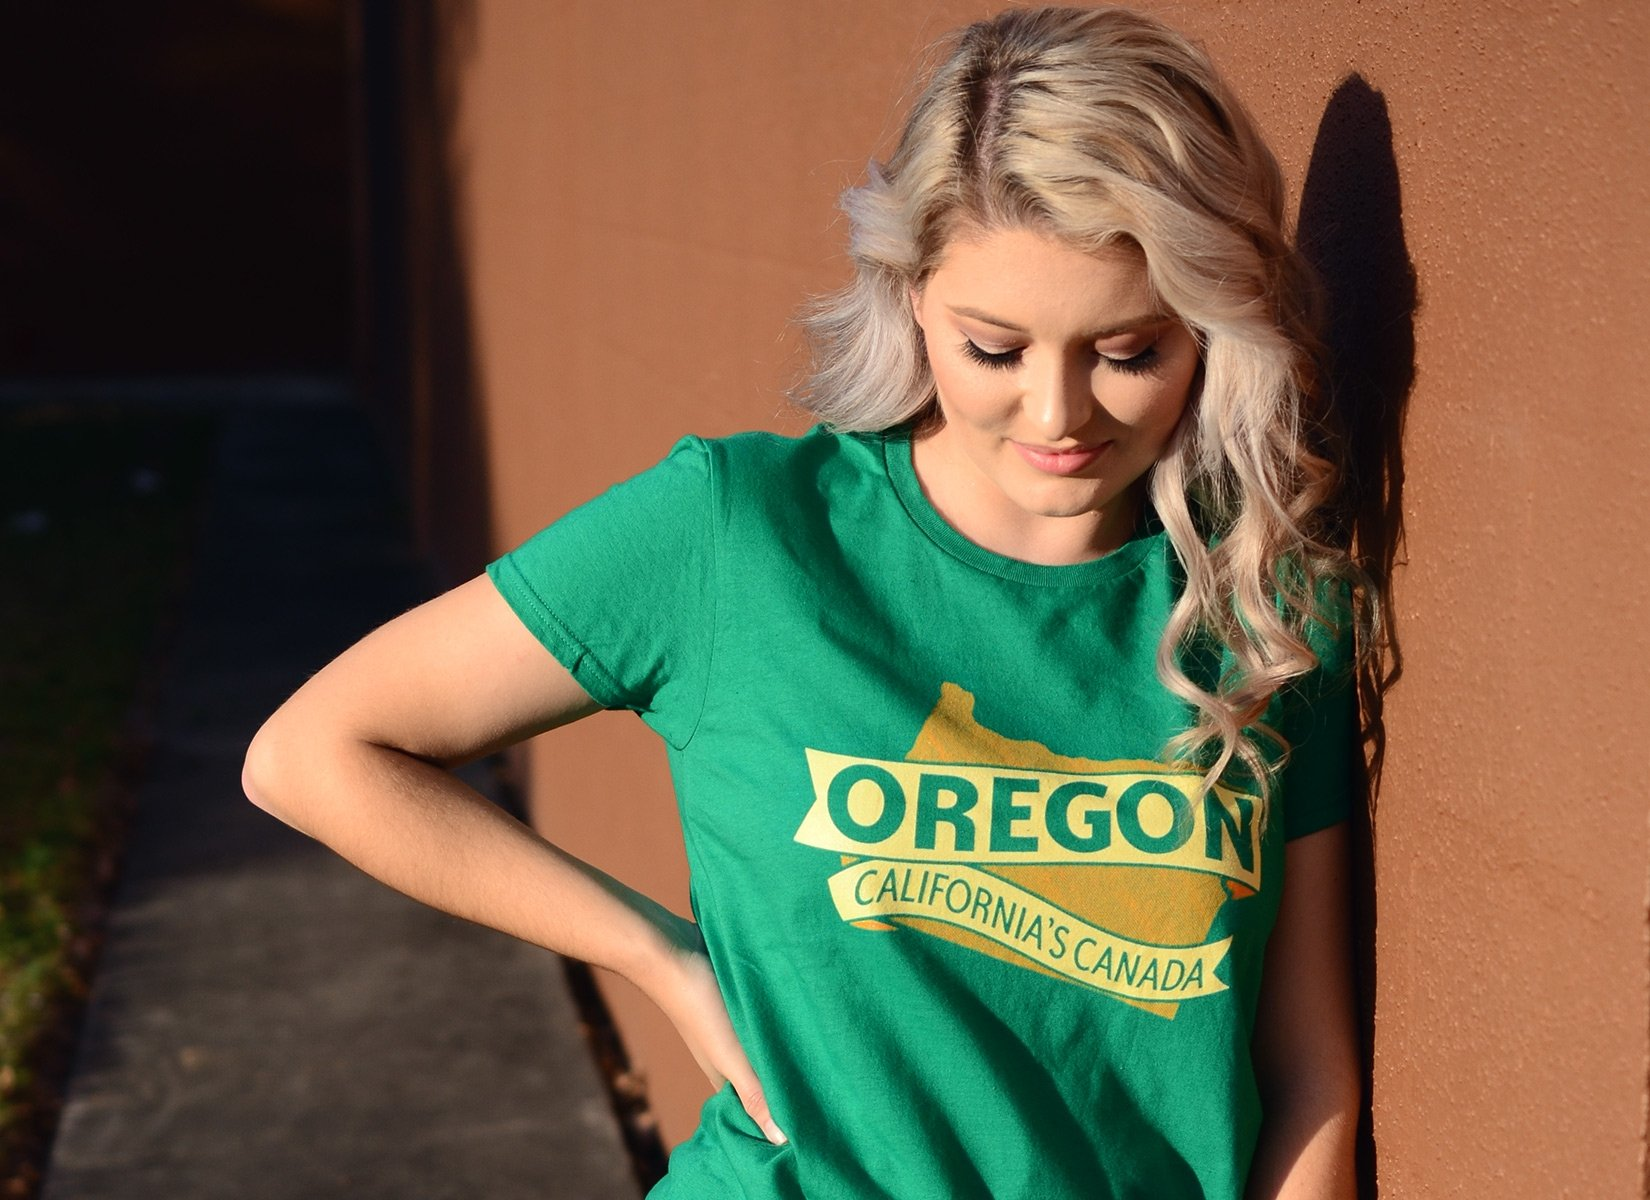 Oregon California's Canada on Womens T-Shirt